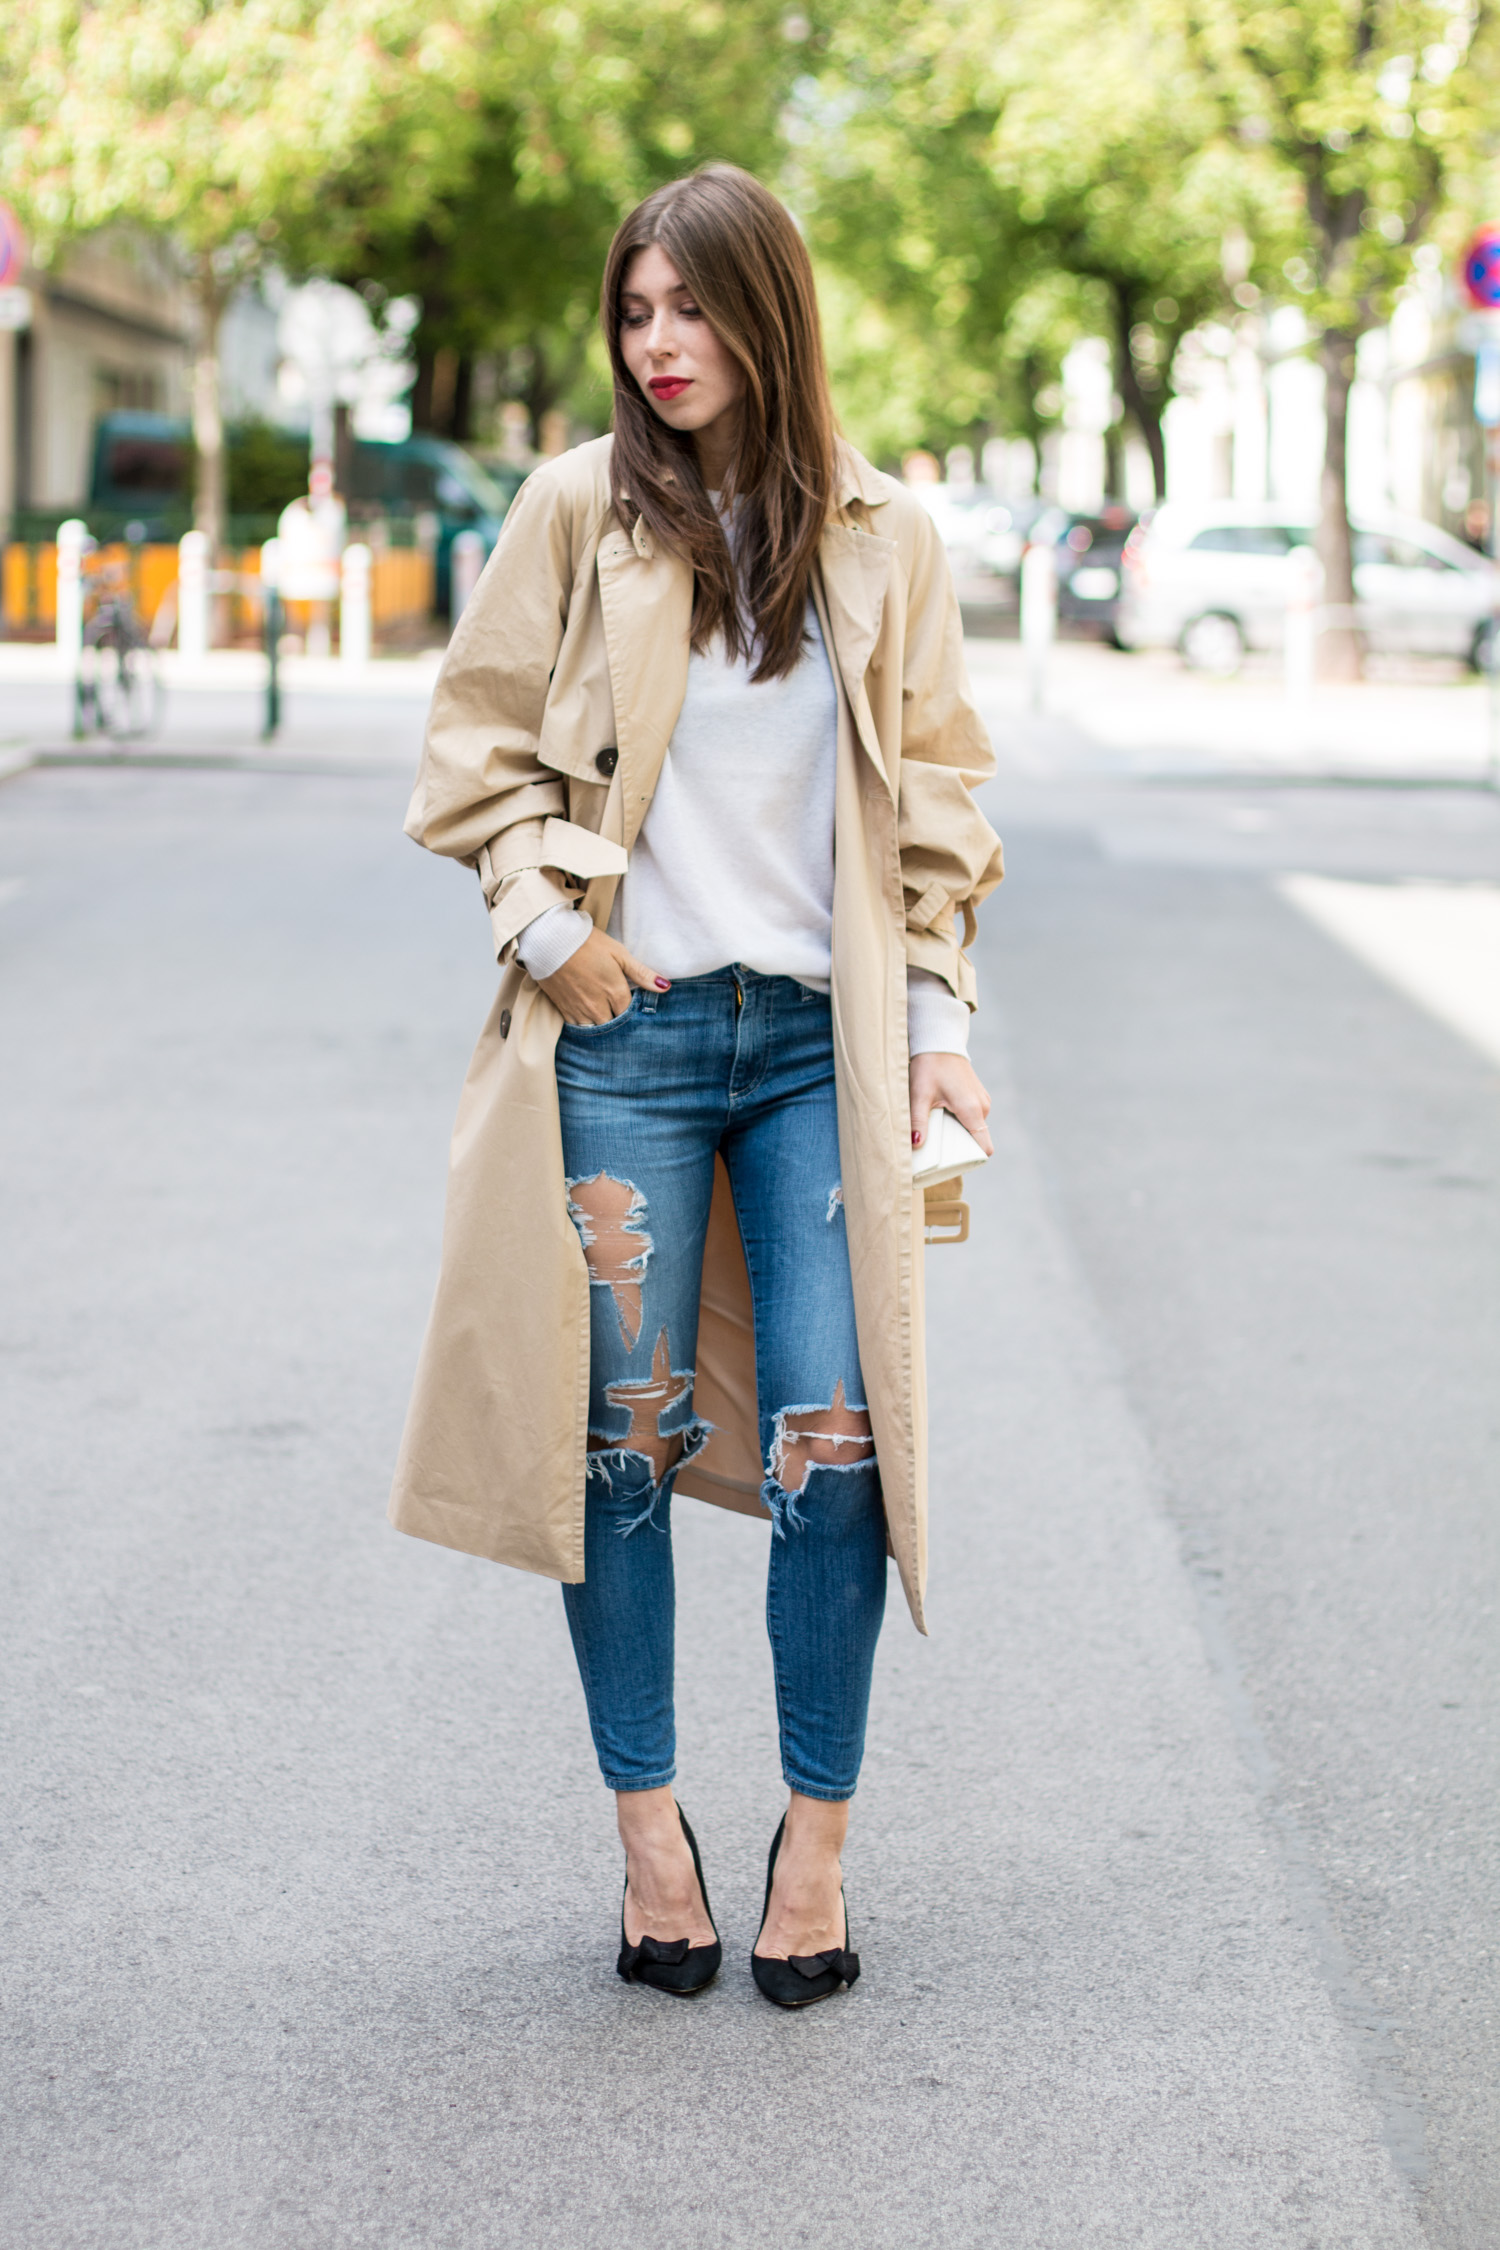 French Chic | The Daily Dose